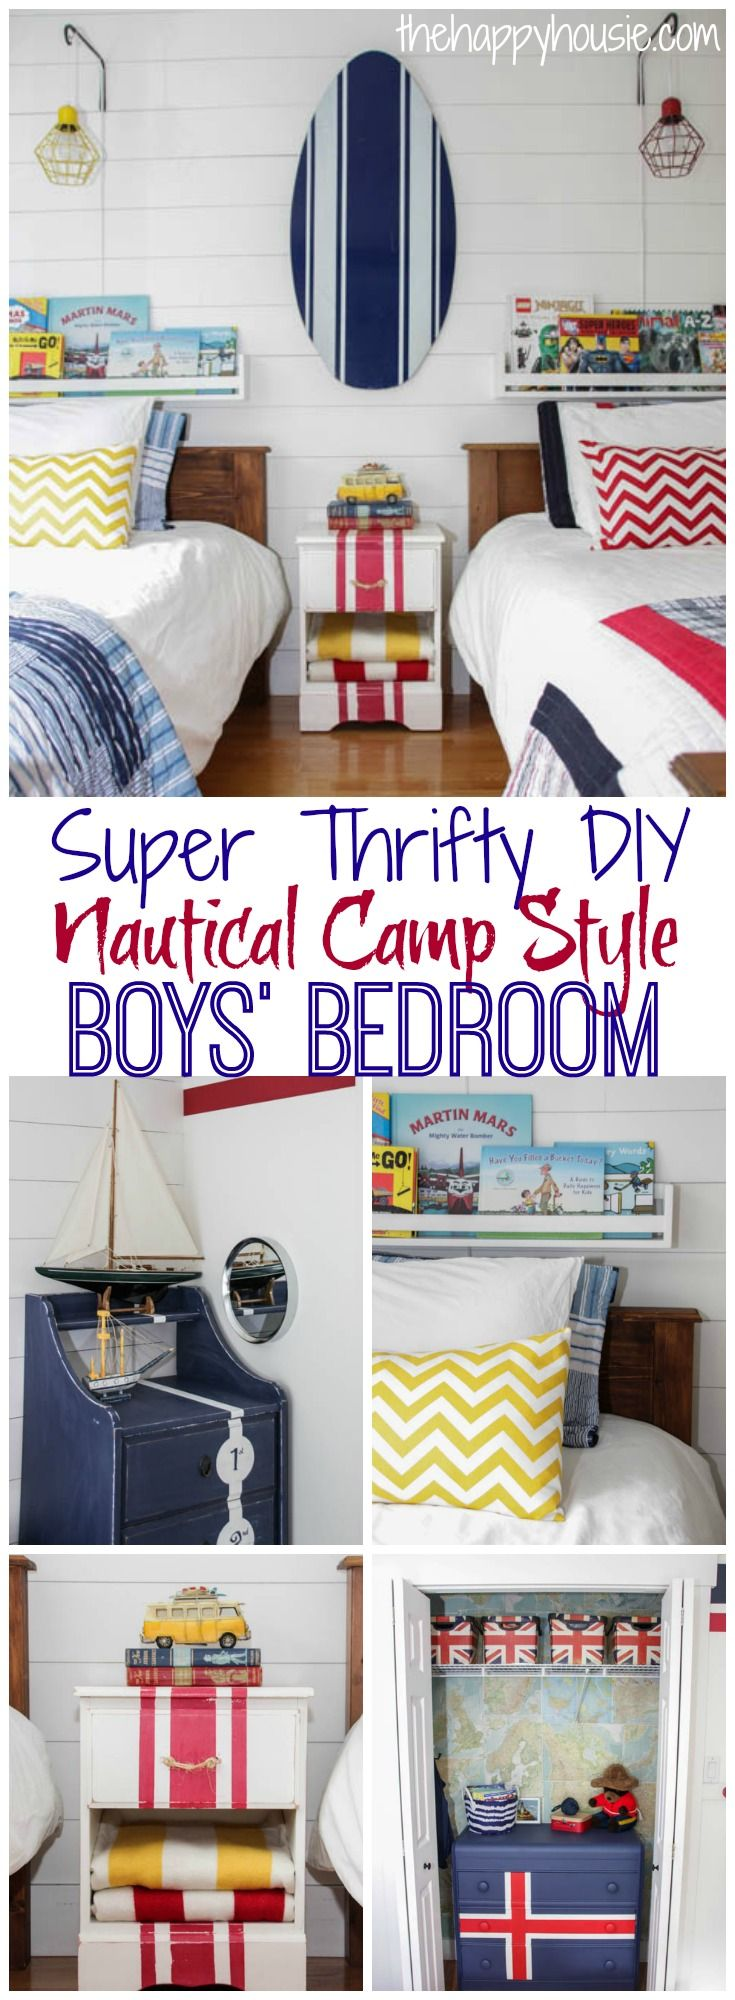 This adorable boys bedroom reveal is full of thrifty DIY ideas for creating a nautical camp style boys bedroom